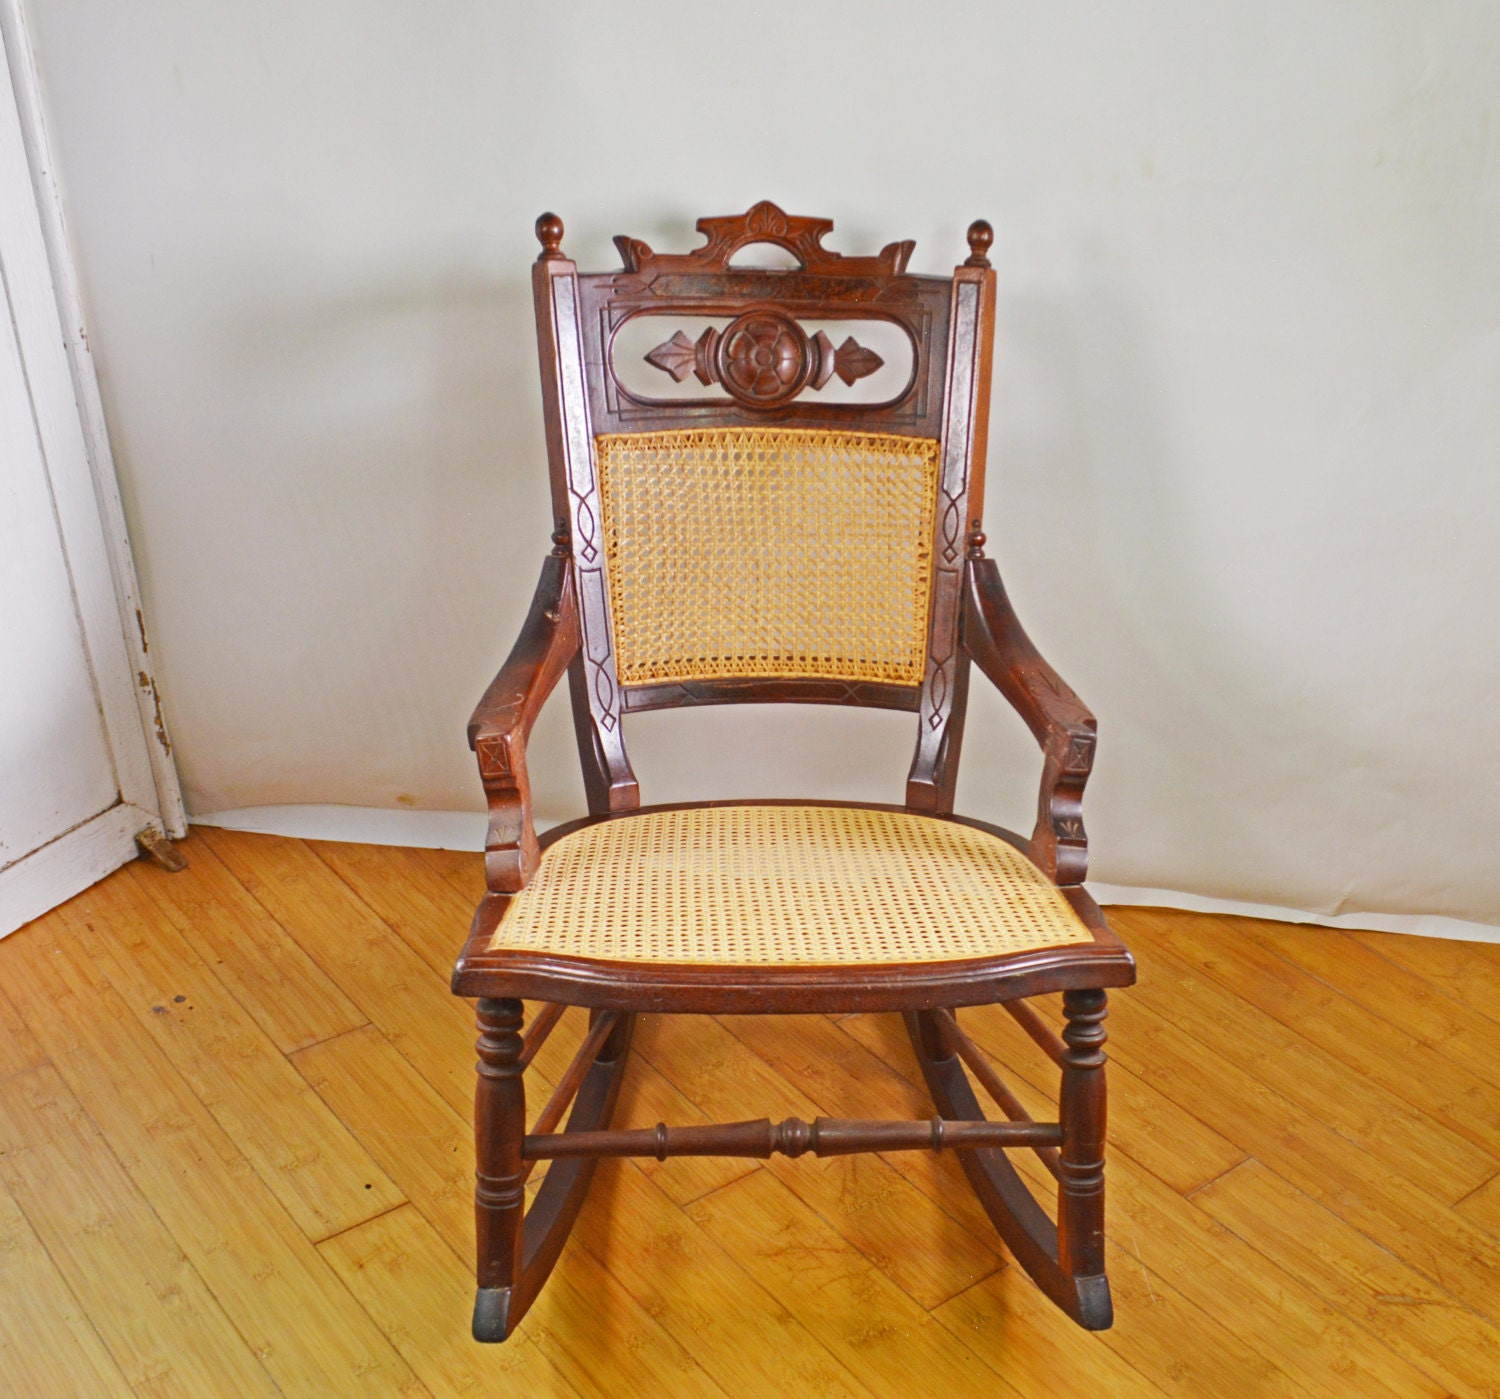 antique rocking chair wood rocking chair rare cane chair. Black Bedroom Furniture Sets. Home Design Ideas